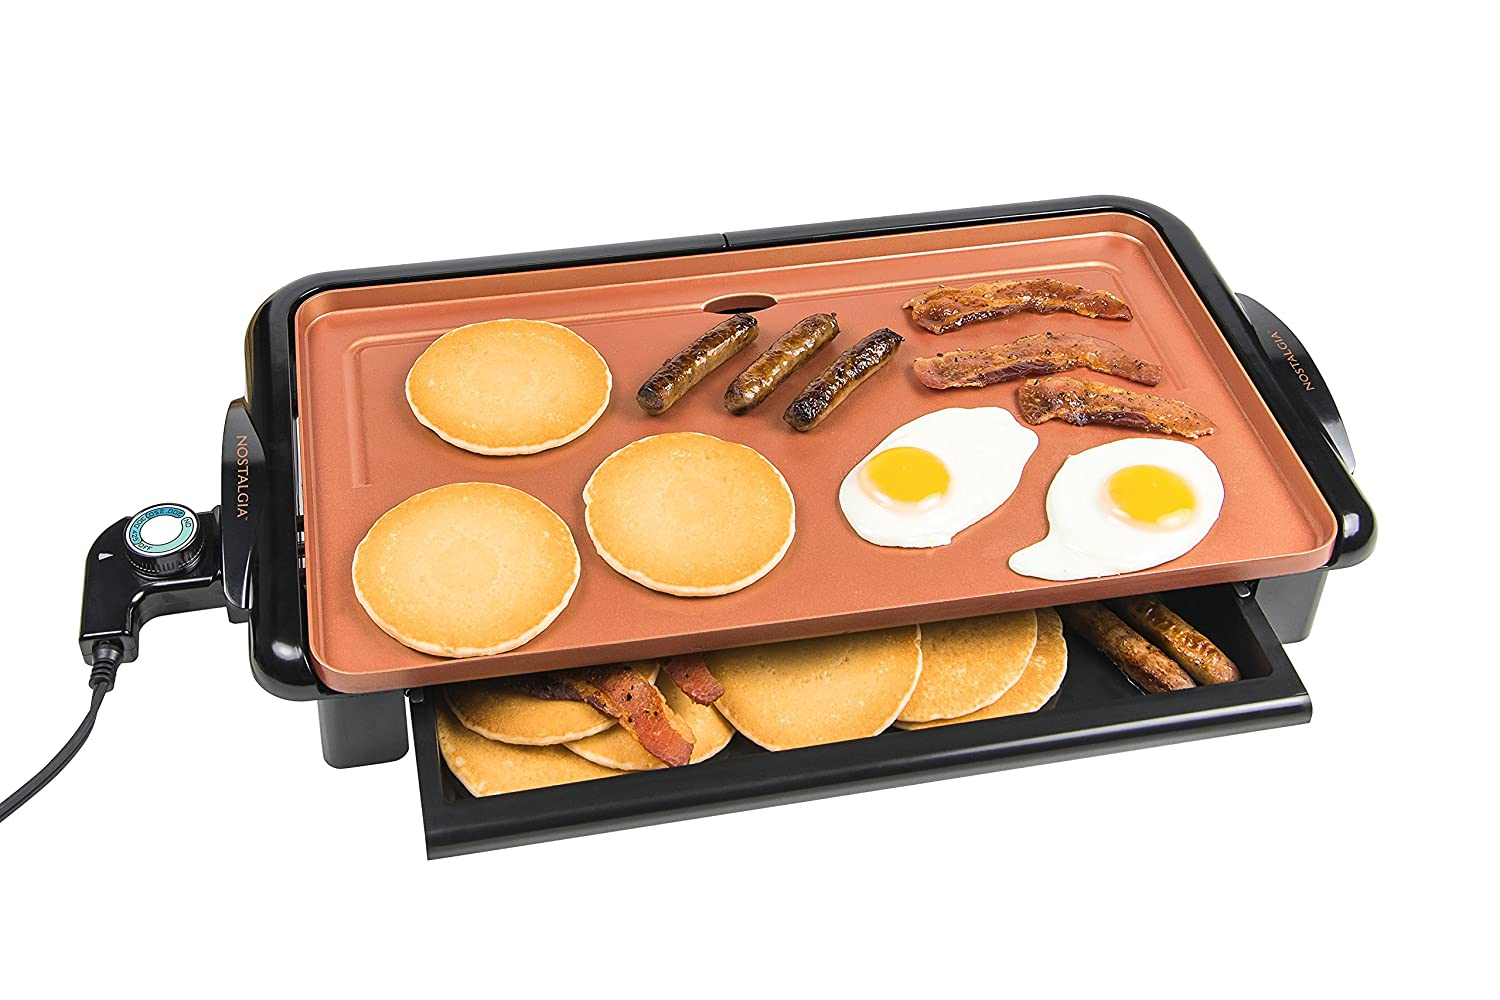 Nostalgia GD20C Copper Ceramic Non-stick Griddle with Warming Drawer